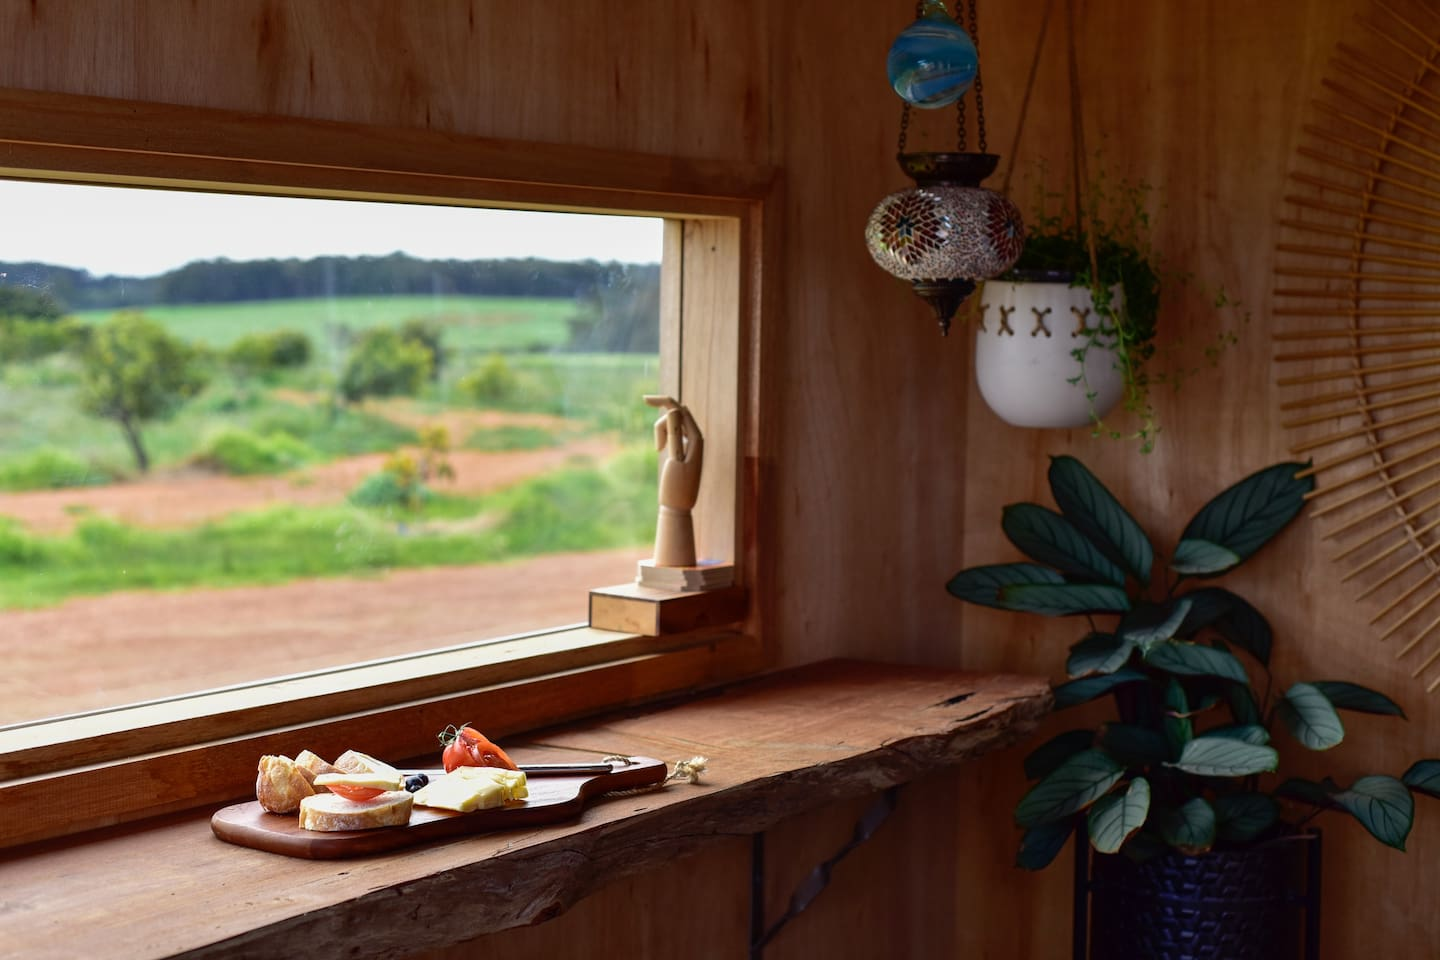 The breakfast bar has a northerly view overlooking pasture and baby avocado trees.